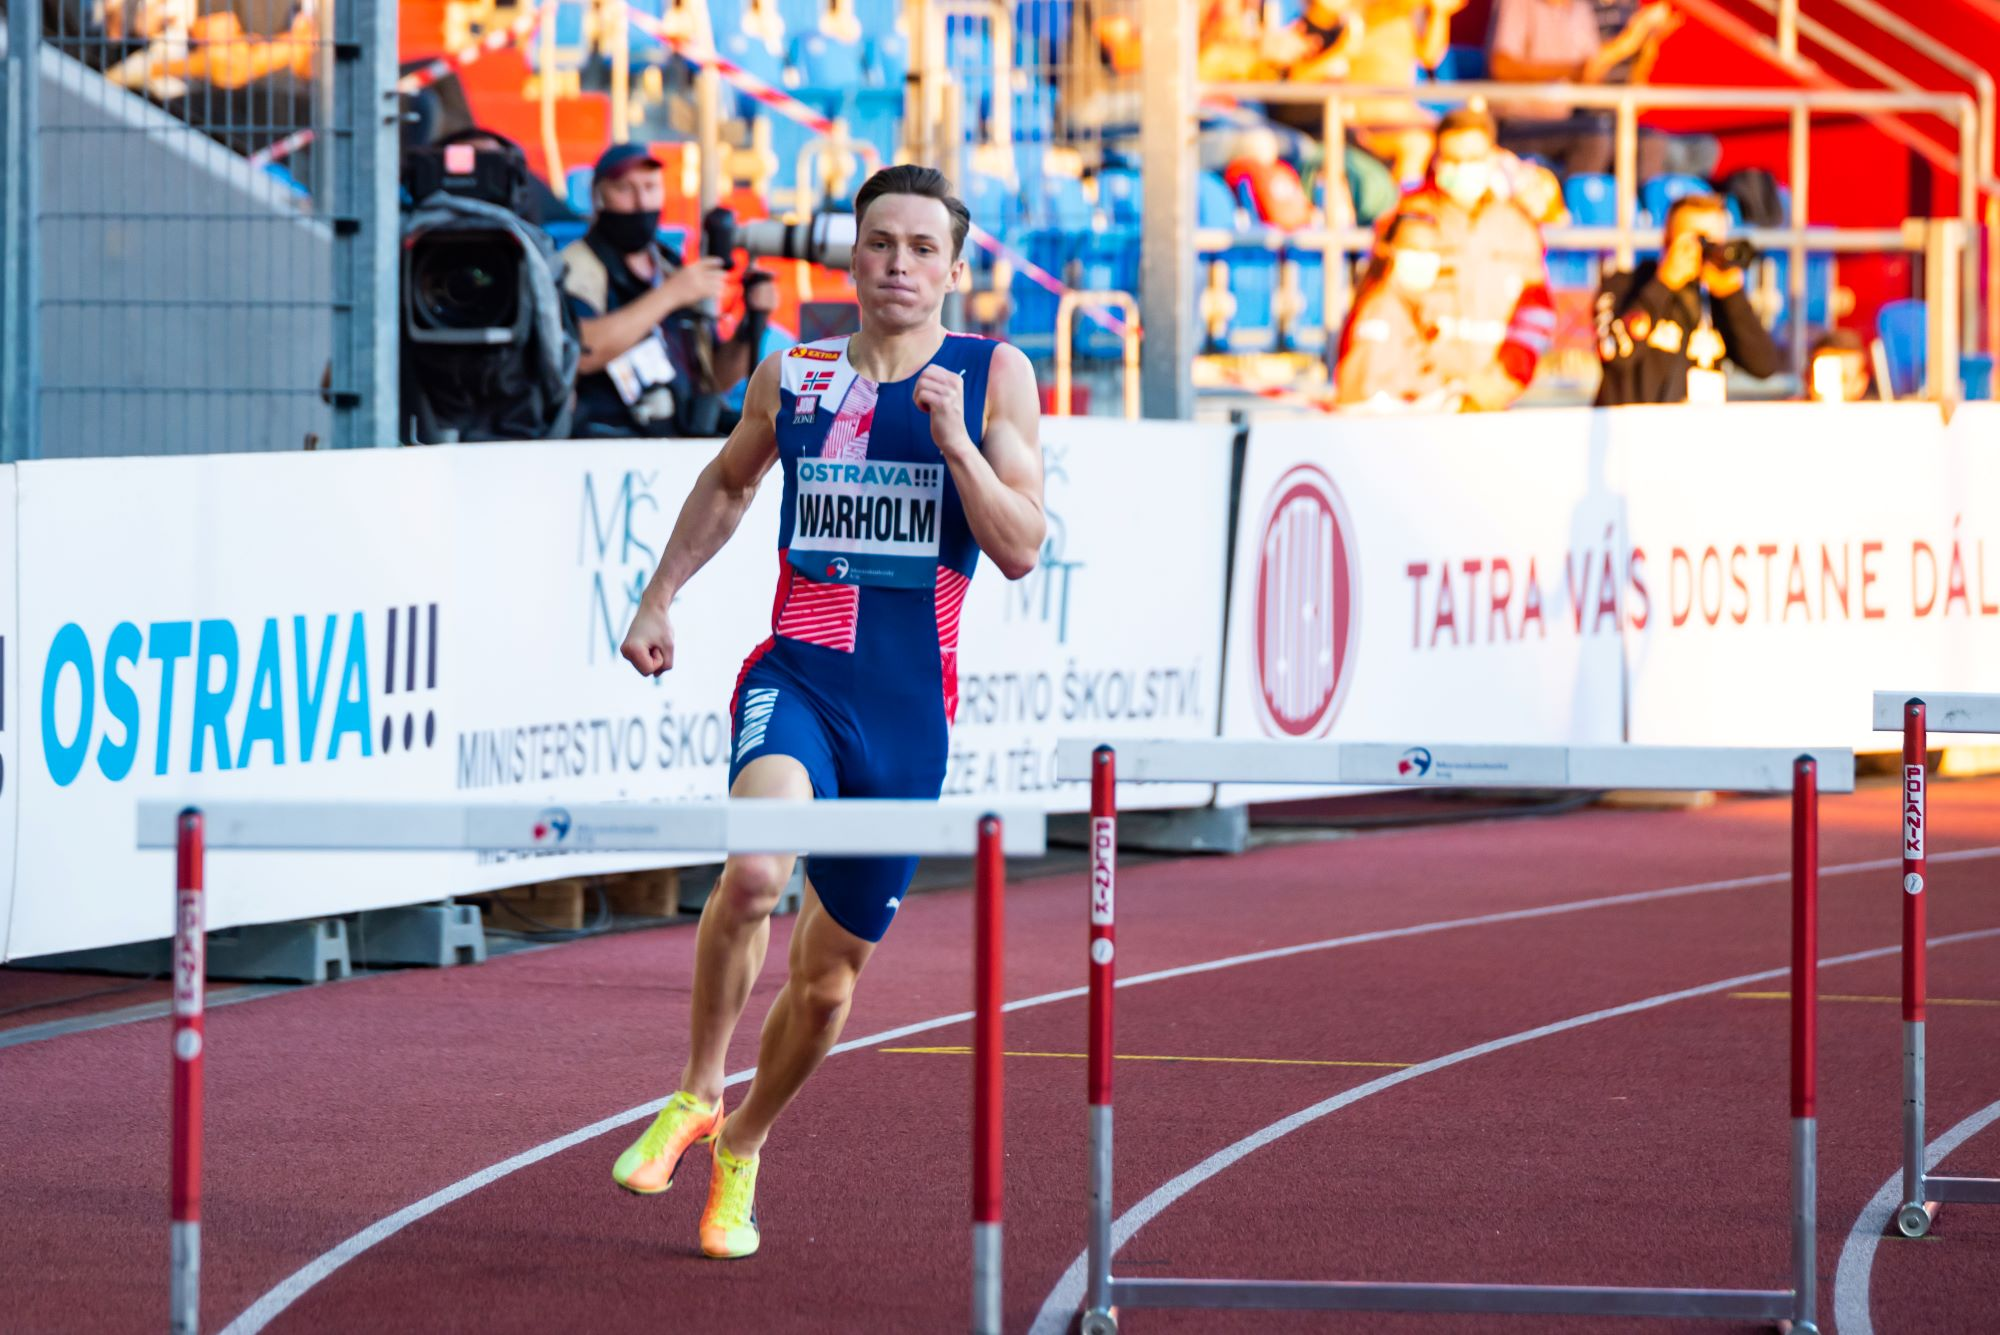 karsten warholm hurdles, Warholm takes issue with track spikes in running shoes